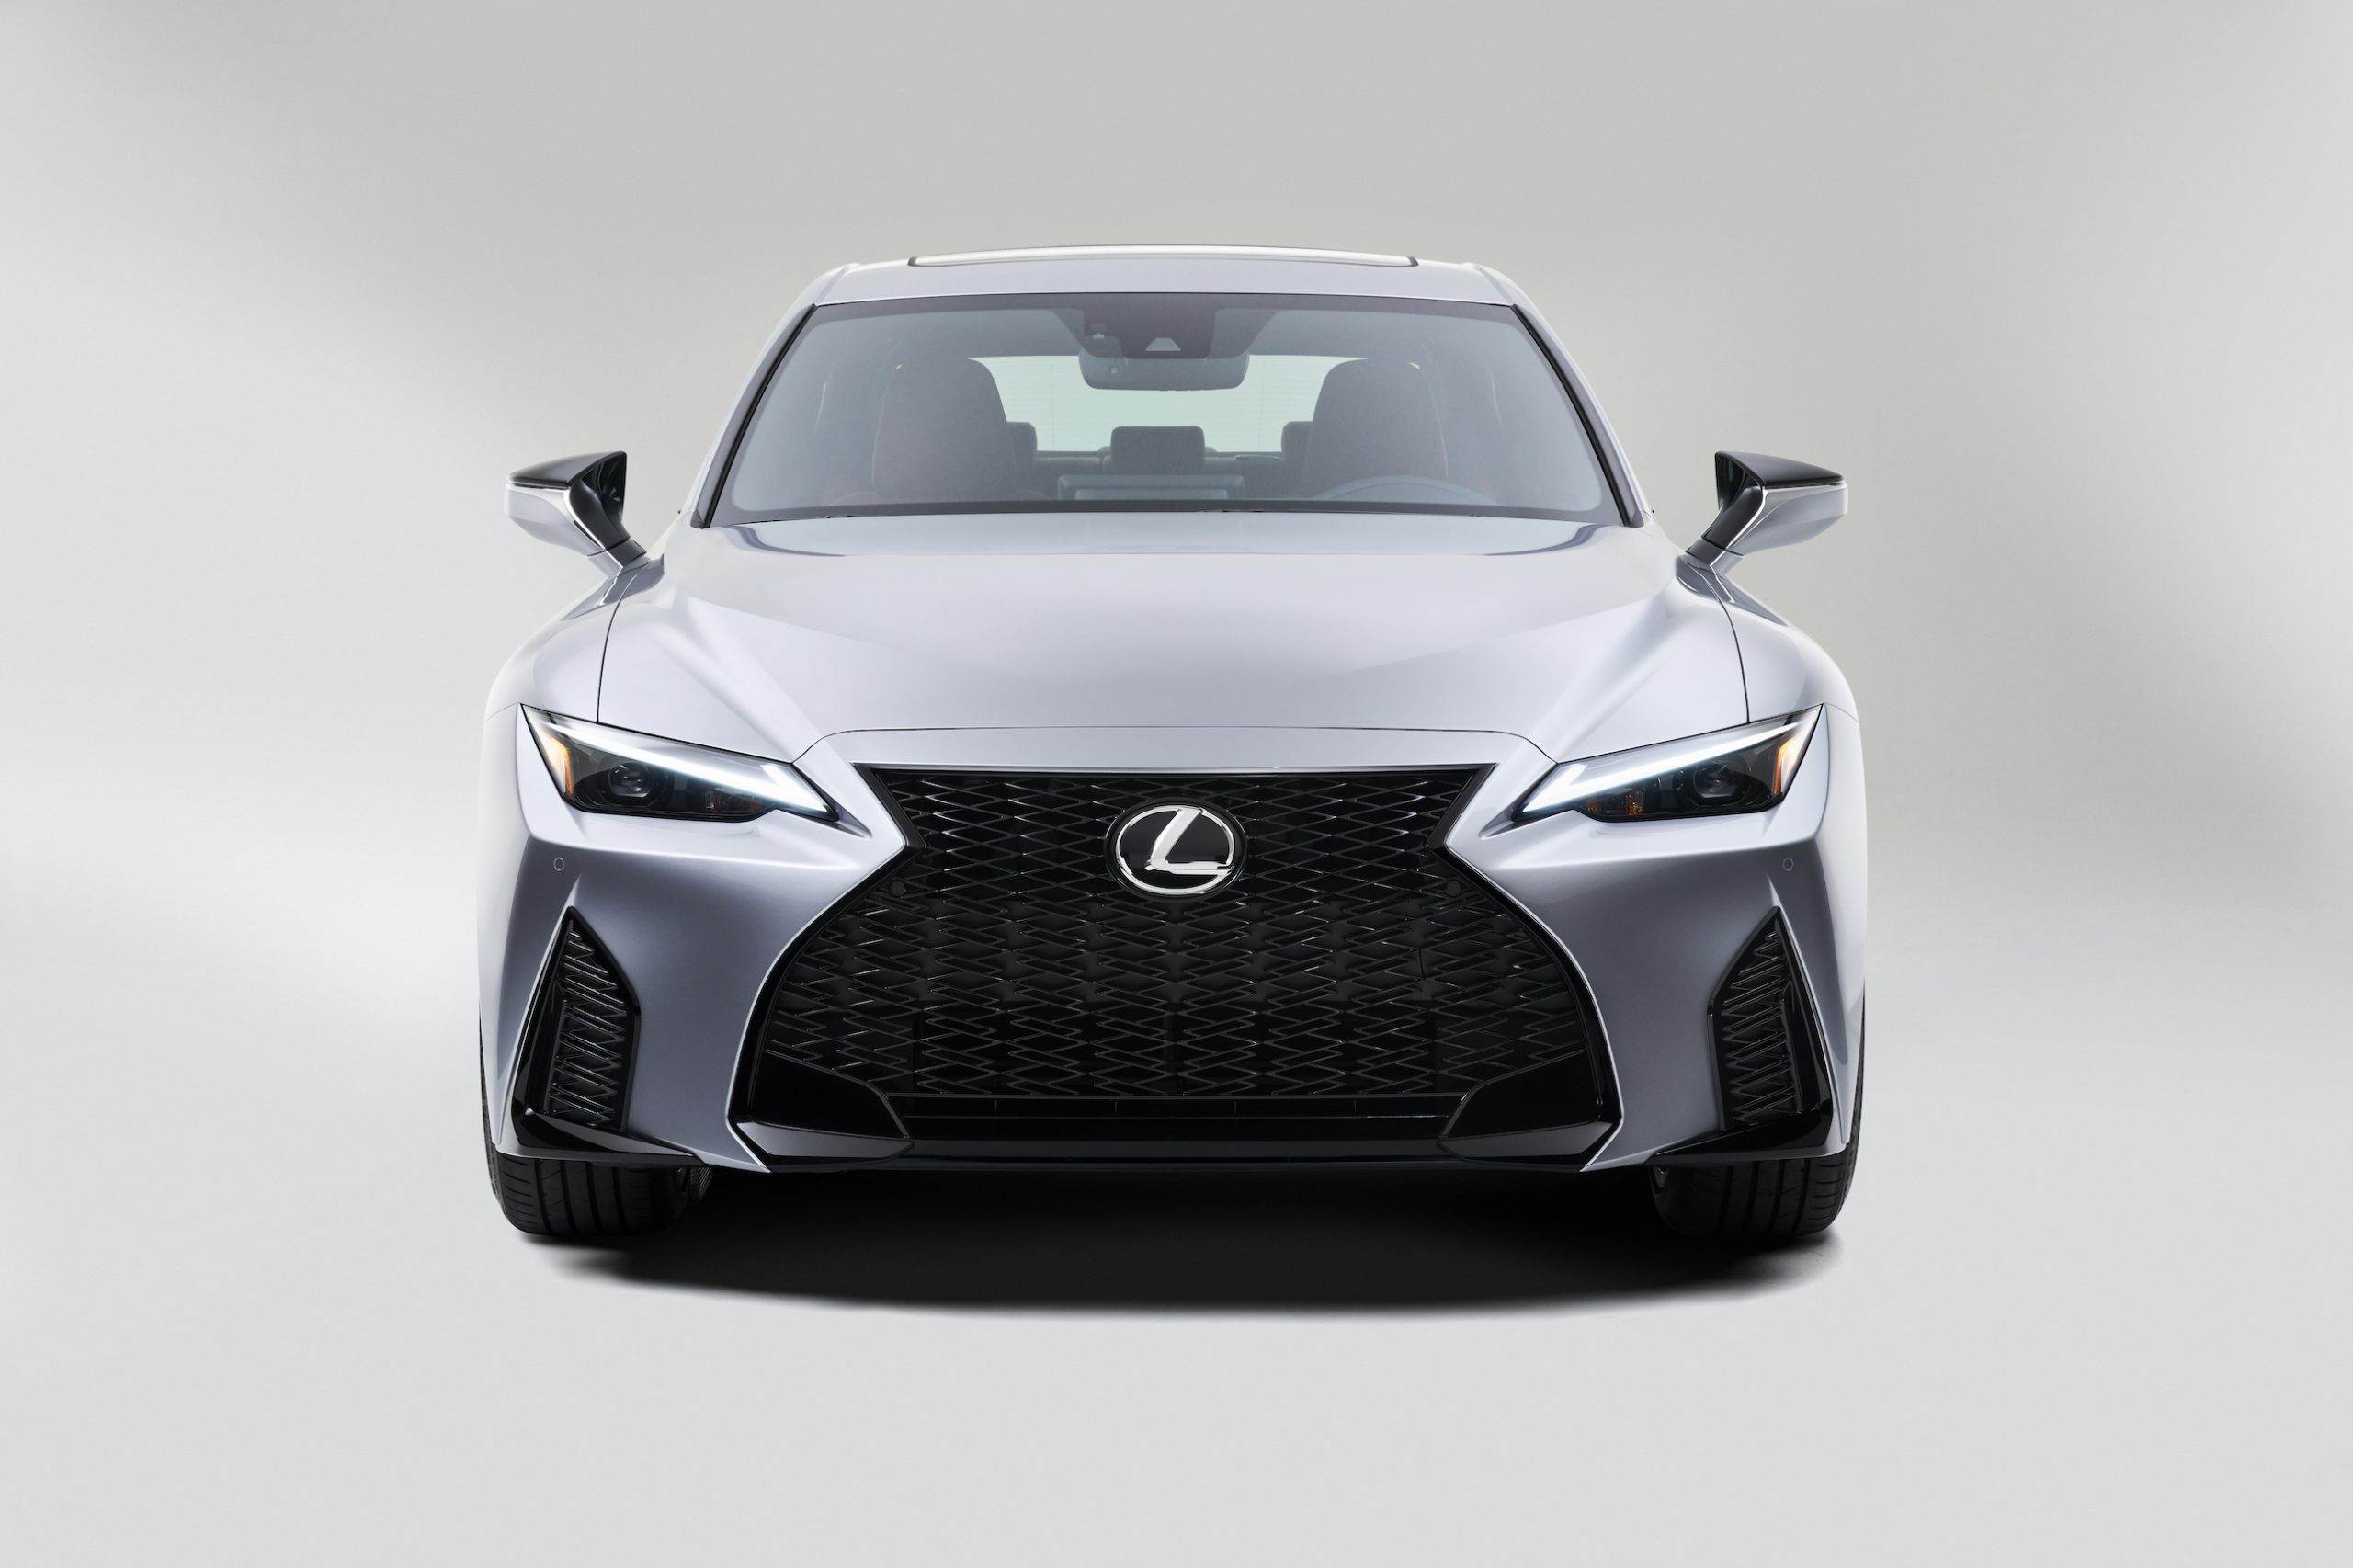 2021 Lexus IS 350 F Sport front